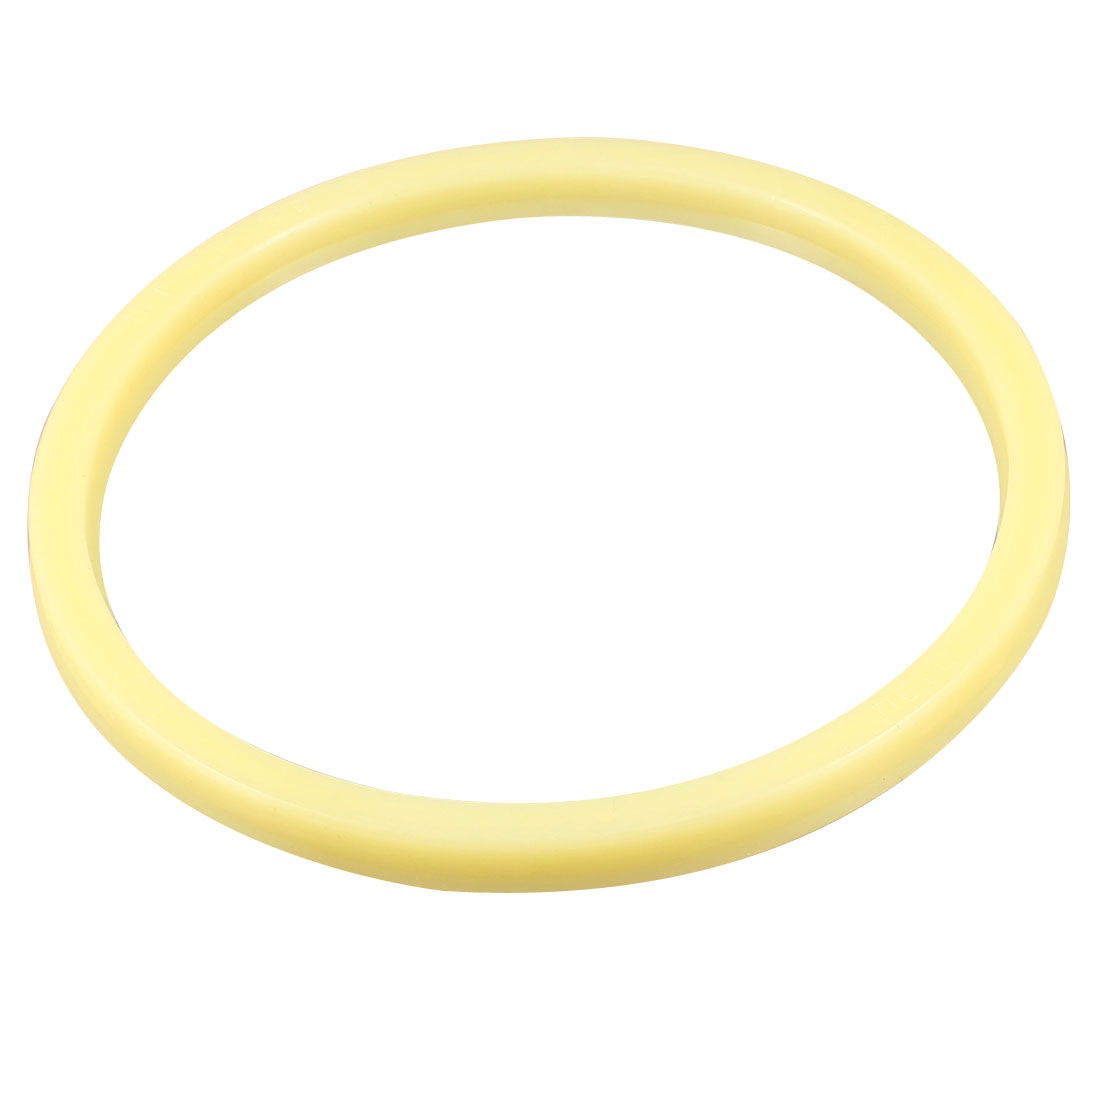 120mm x 135mm x 9mm Polyurethane UHS Oil Seal Rings Sealing Gasket